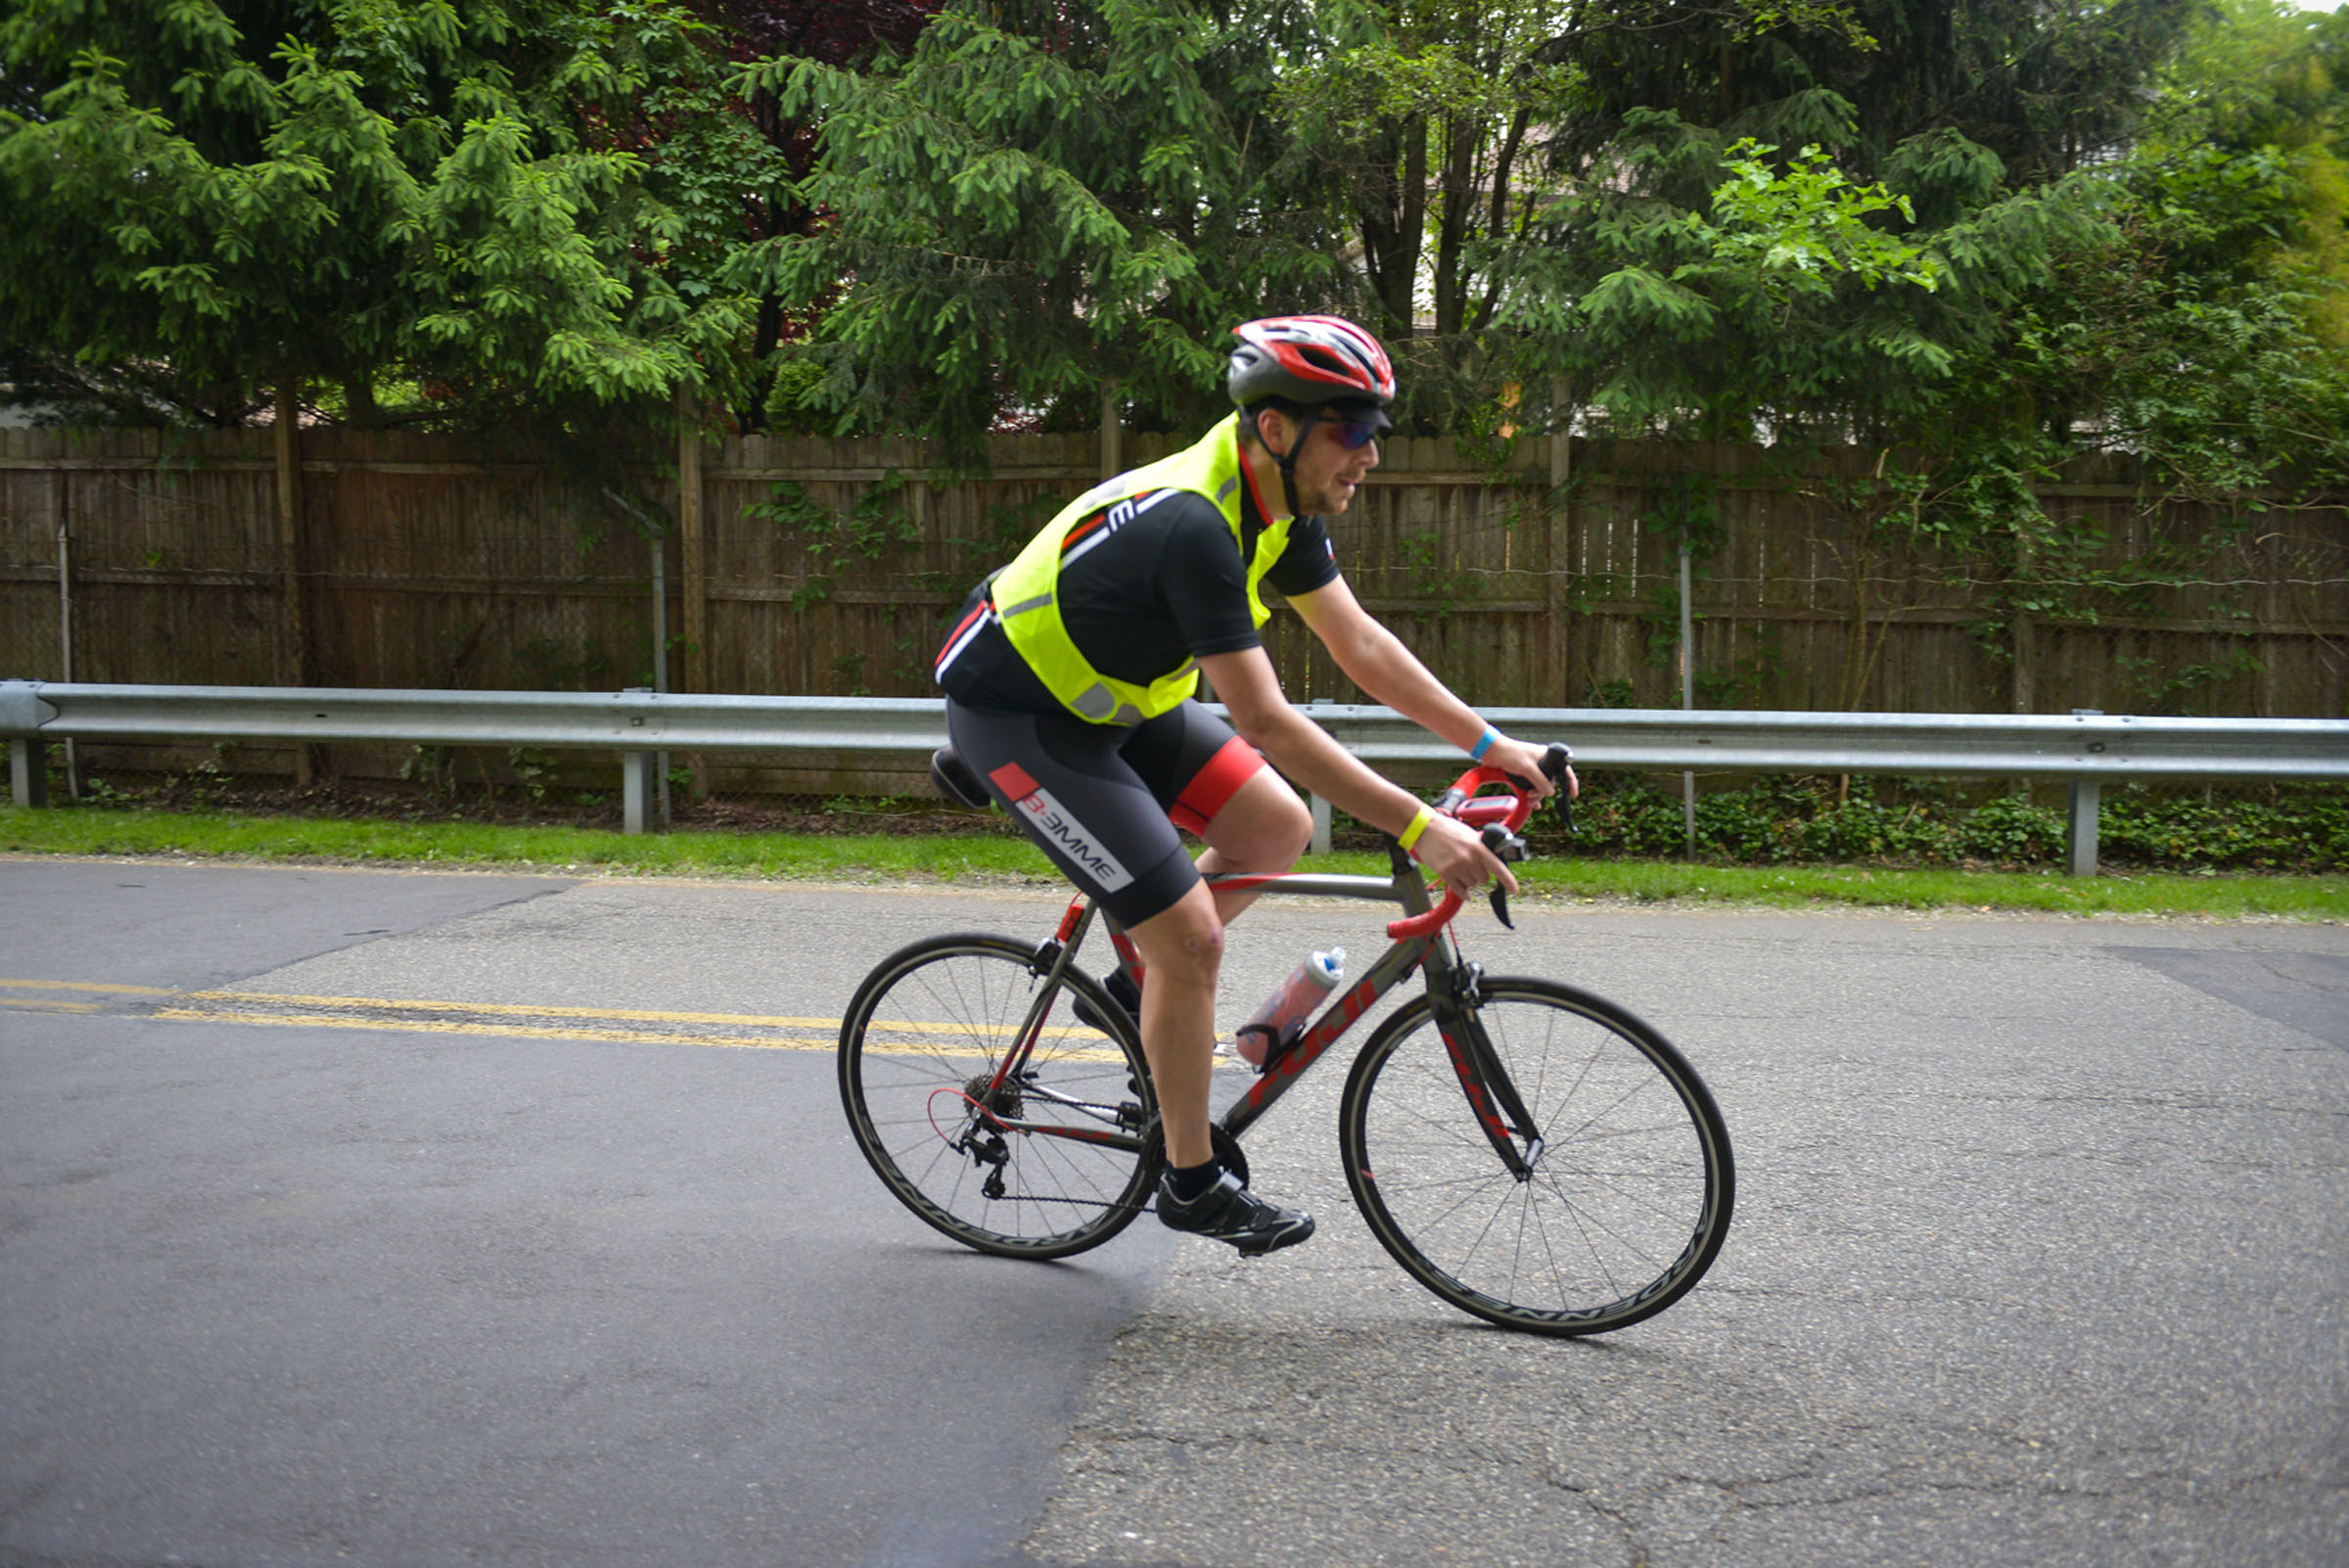 2017-06-04 GTD4A Charity Bike Ride - BCC - Paramus NJ-2304.jpg